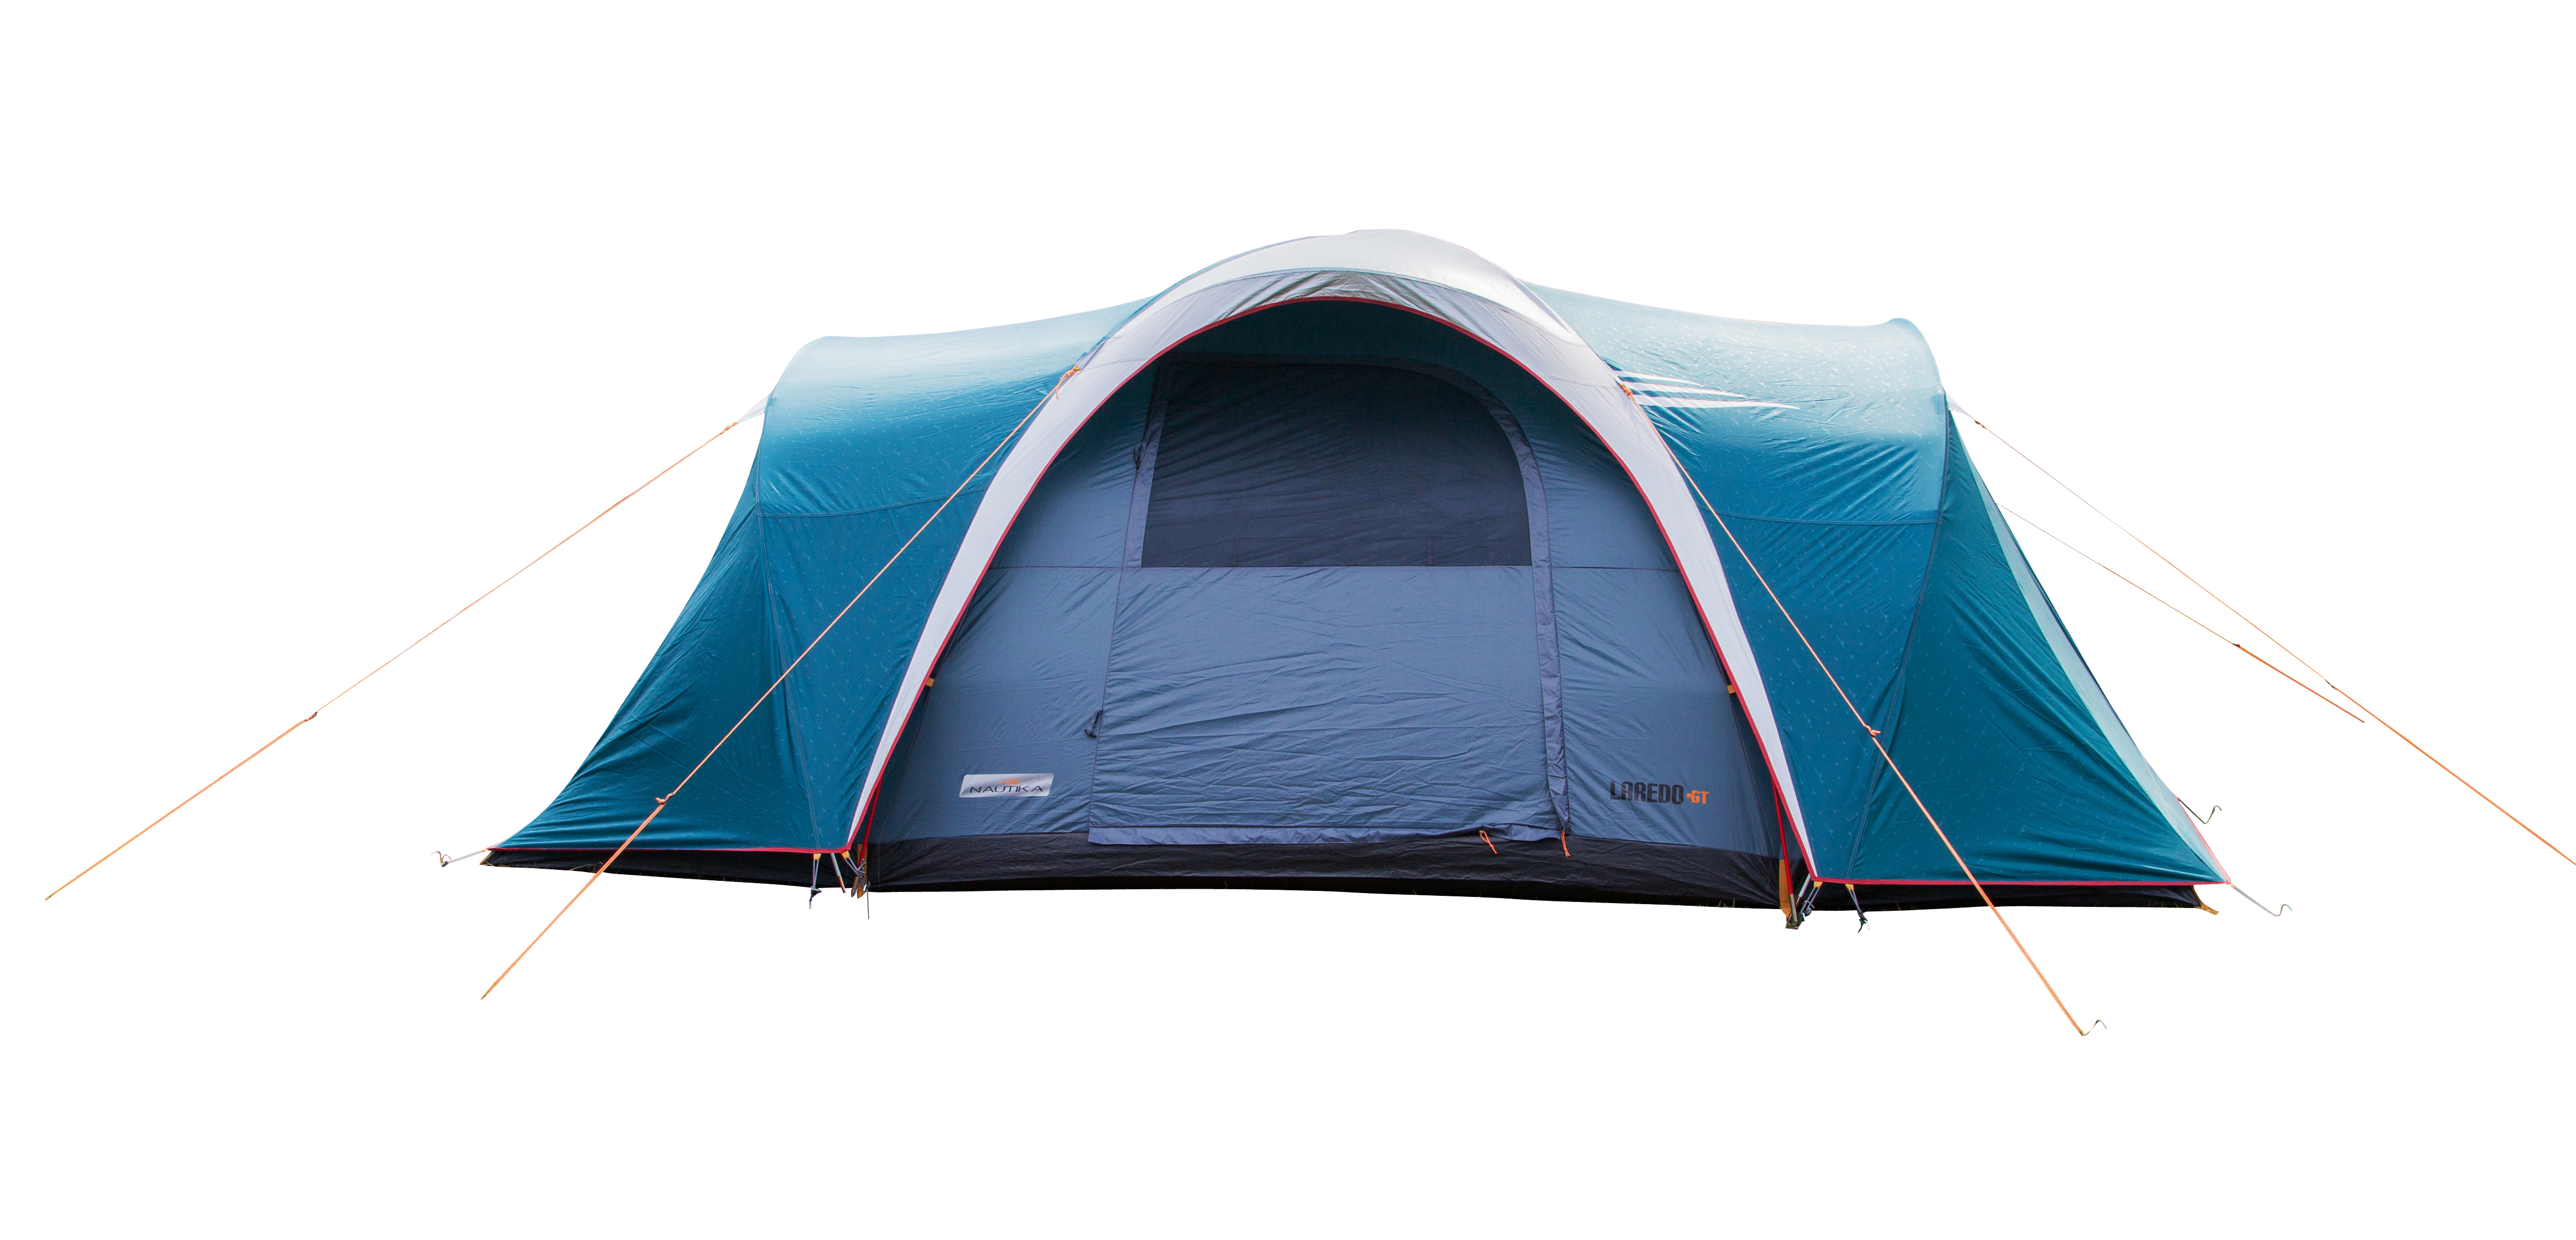 ntk laredo gt 8 to 9 person 10 by 15 foot sport camping tent 100